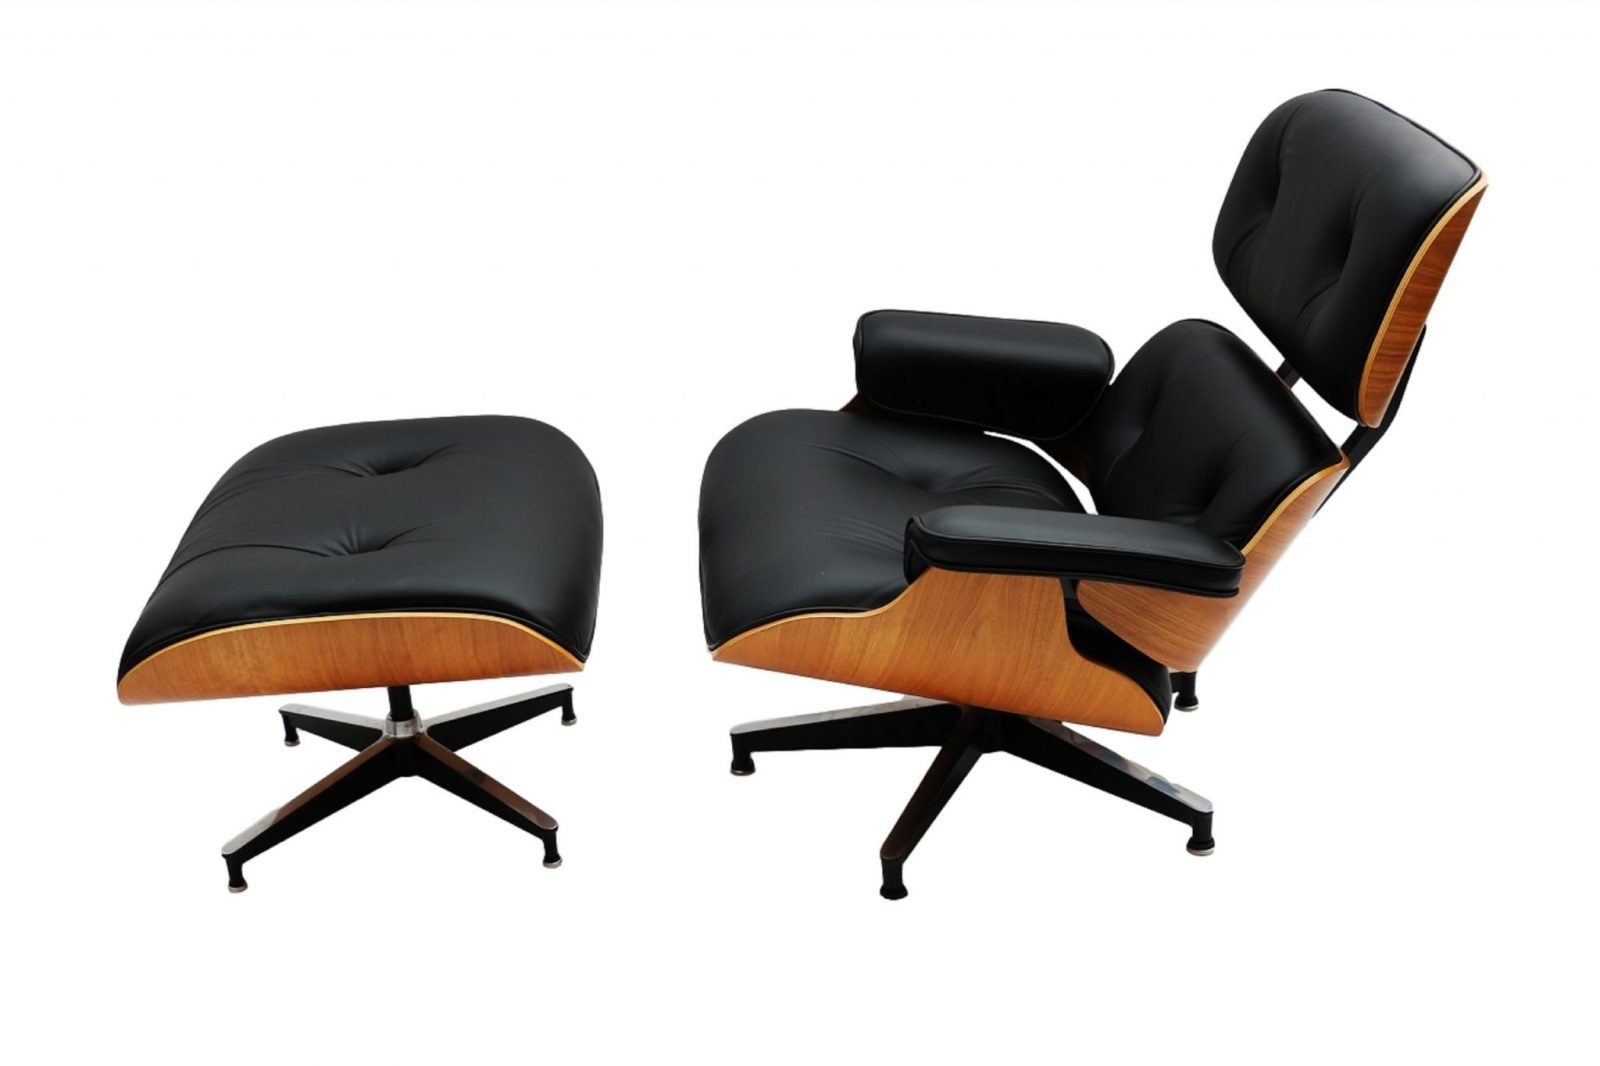 Herman Miller Eames Lounge Chair And Ottoman Model 670 671